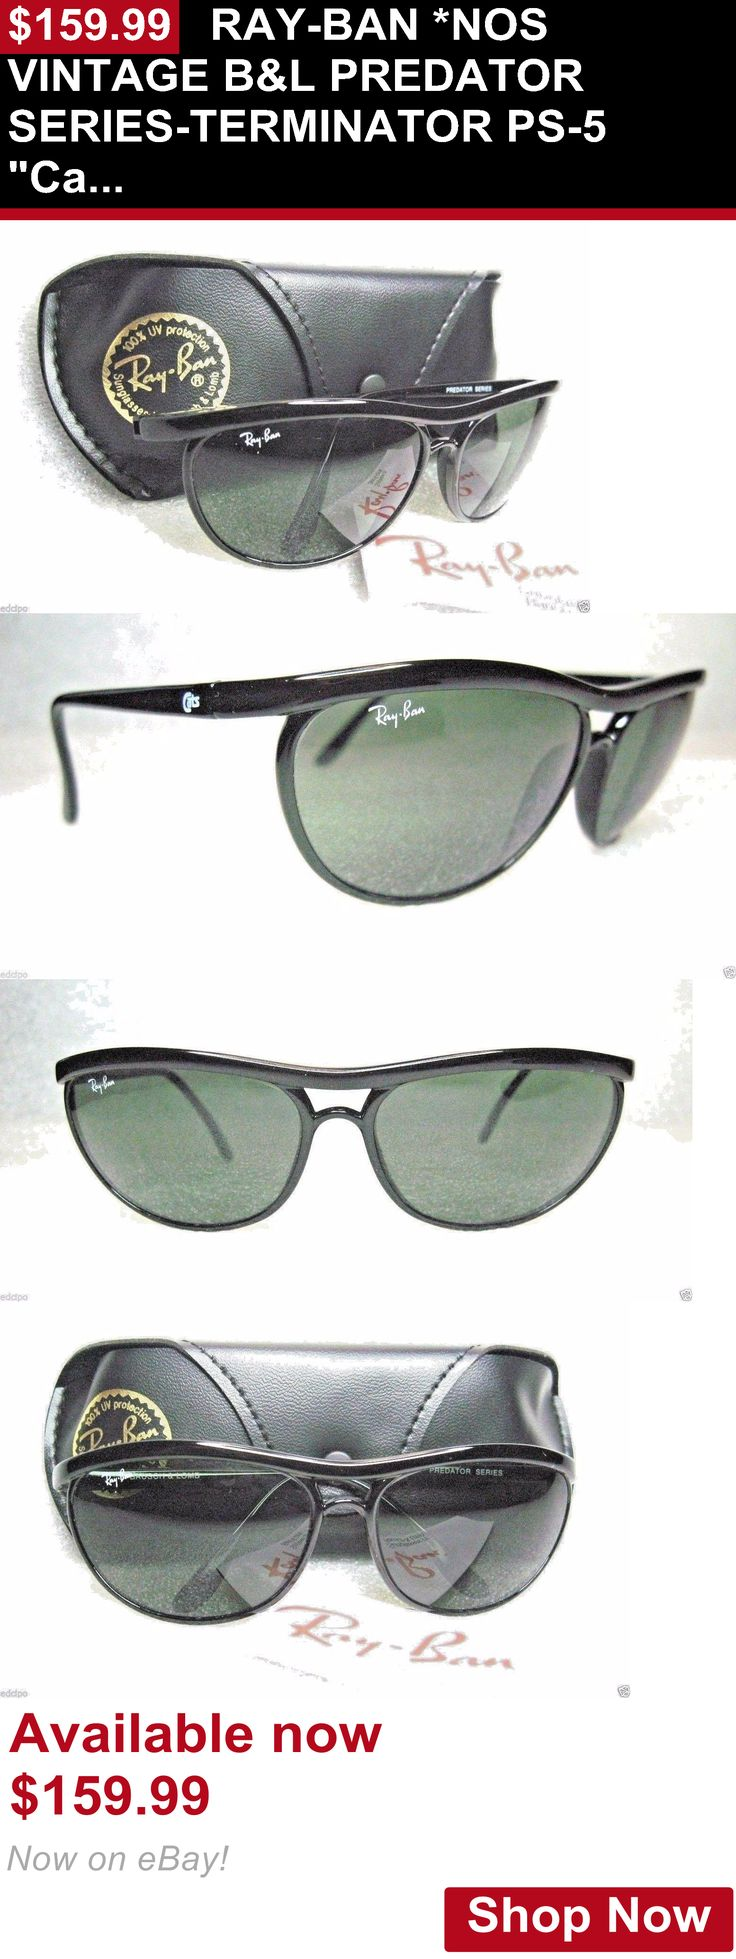 Vintage accessories: Ray-Ban *Nos Vintage Bandl Predator Series-Terminator Ps-5 Cats W2172 Sunglasses BUY IT NOW ONLY: $159.99